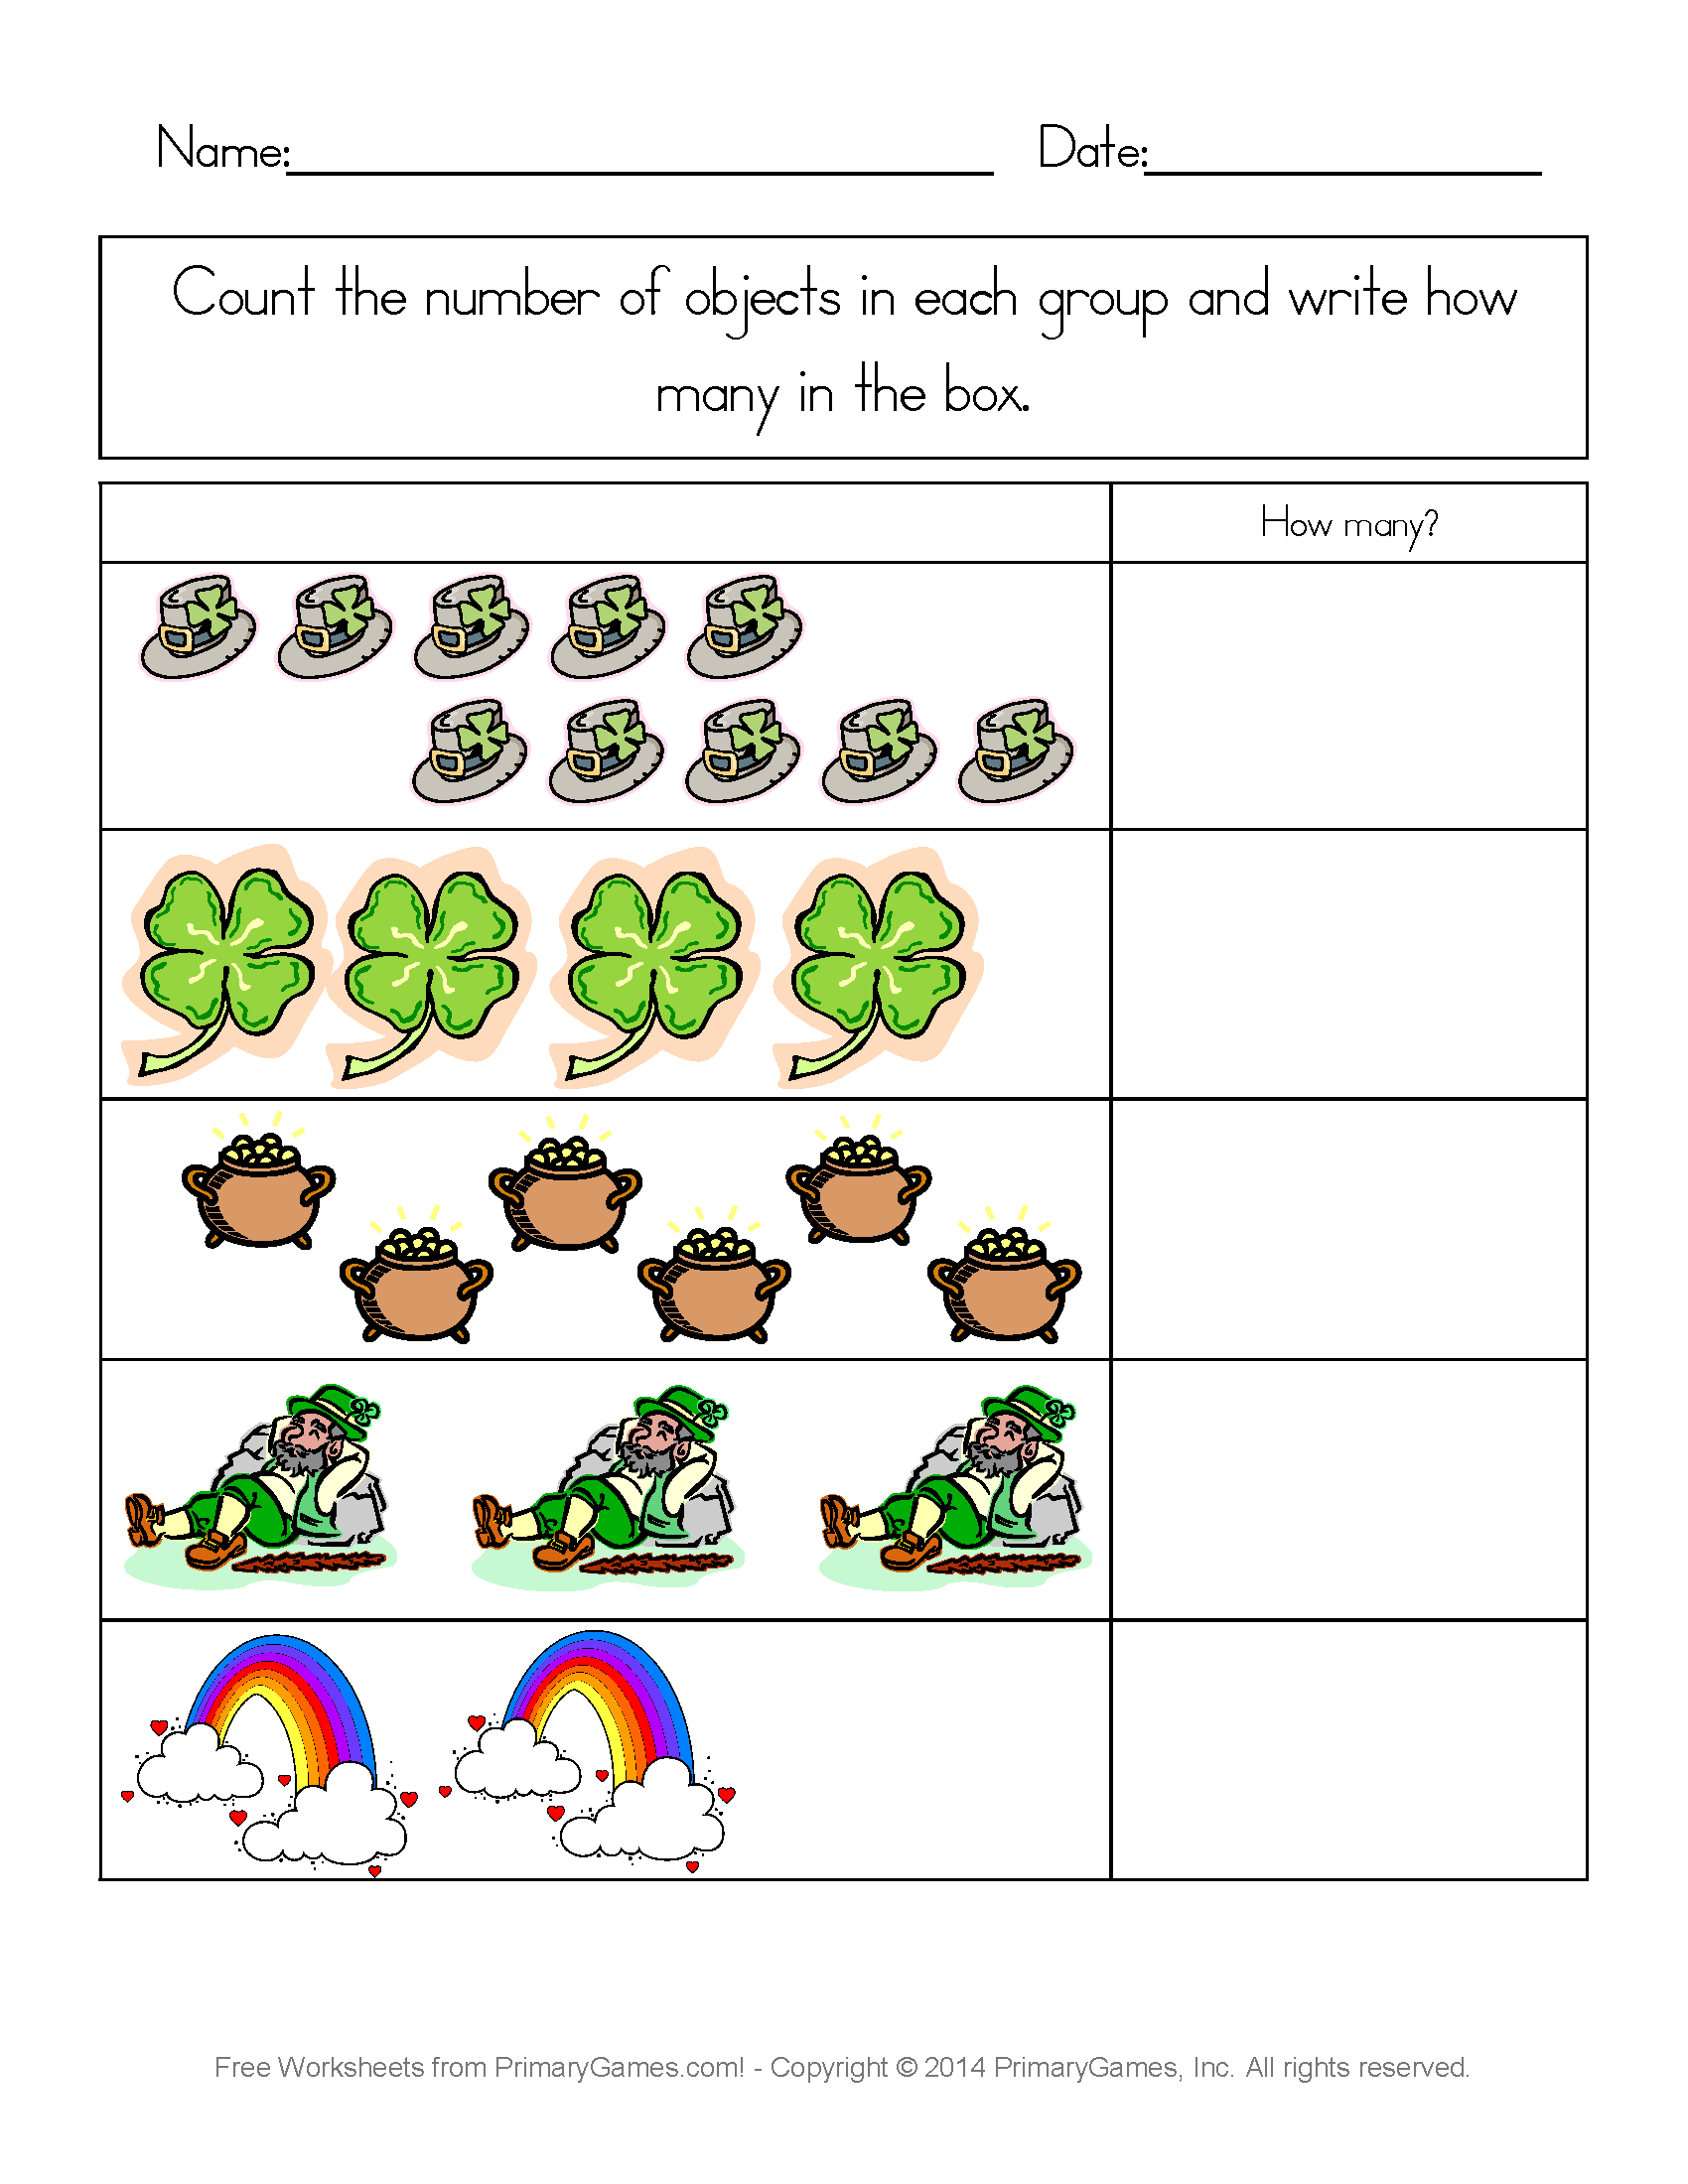 photograph relating to St Patrick's Day Worksheets Free Printable named St. Patricks Working day Worksheets: St. Patricks Working day Counting